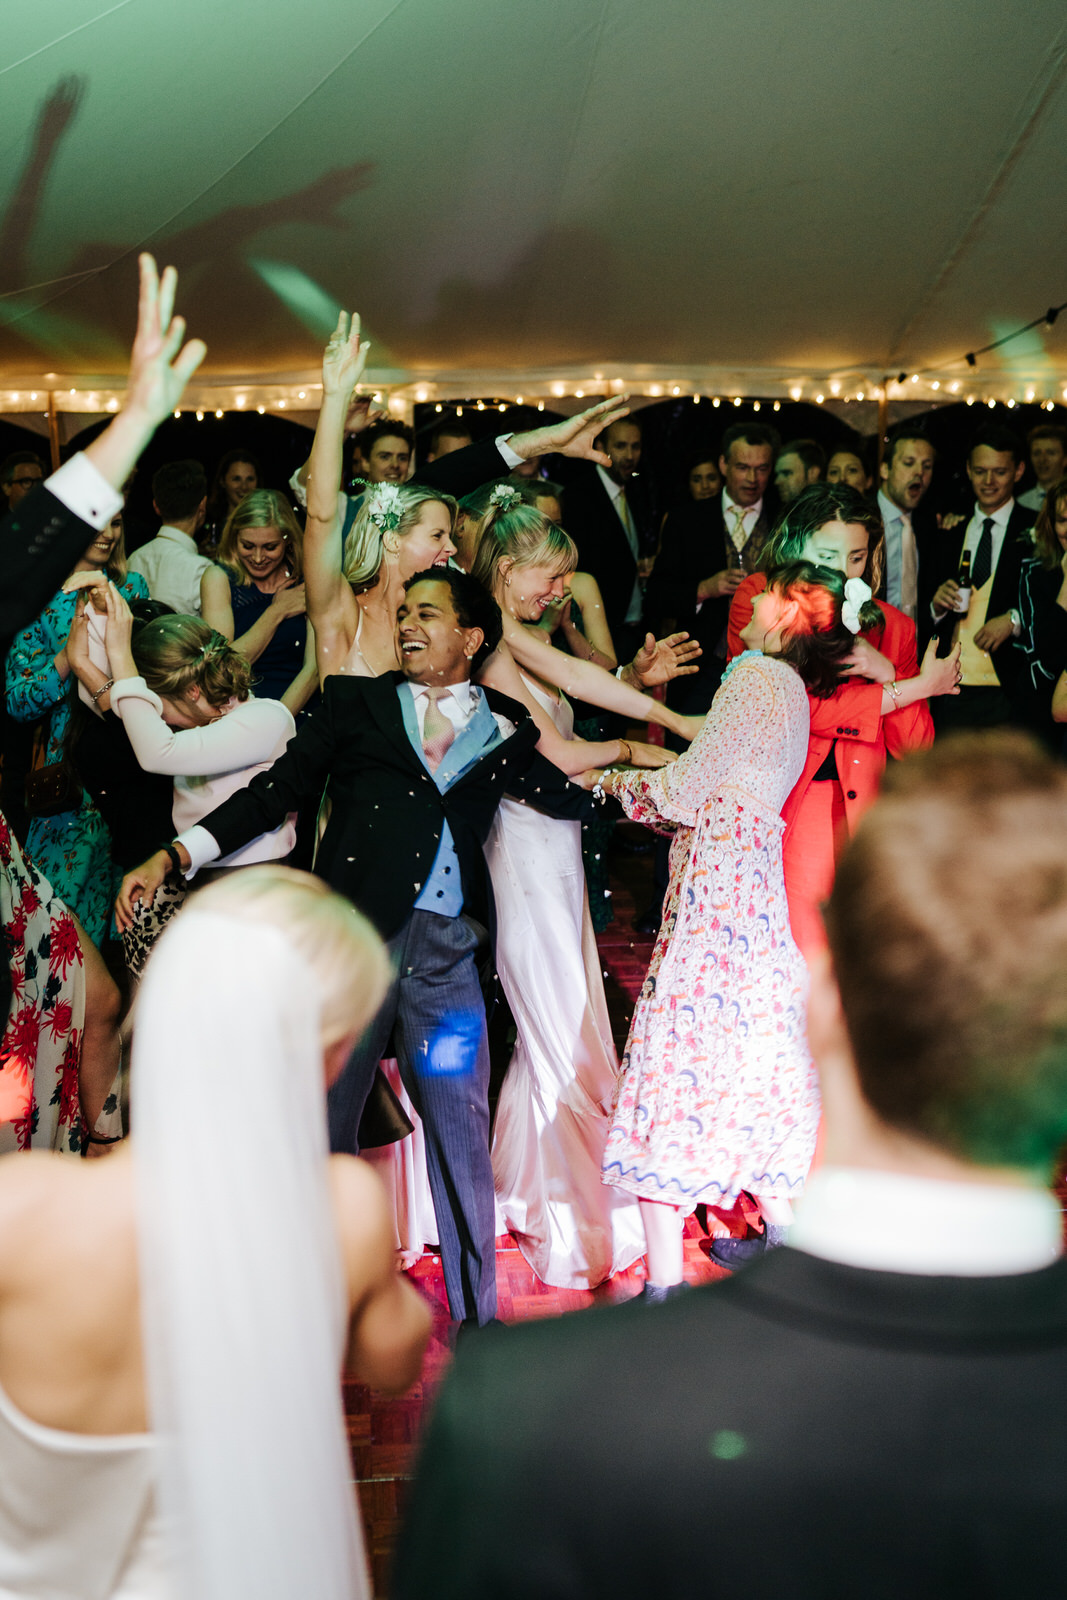 Chaos on the dancefloor as a lot of guests try to catch the bouquet at once